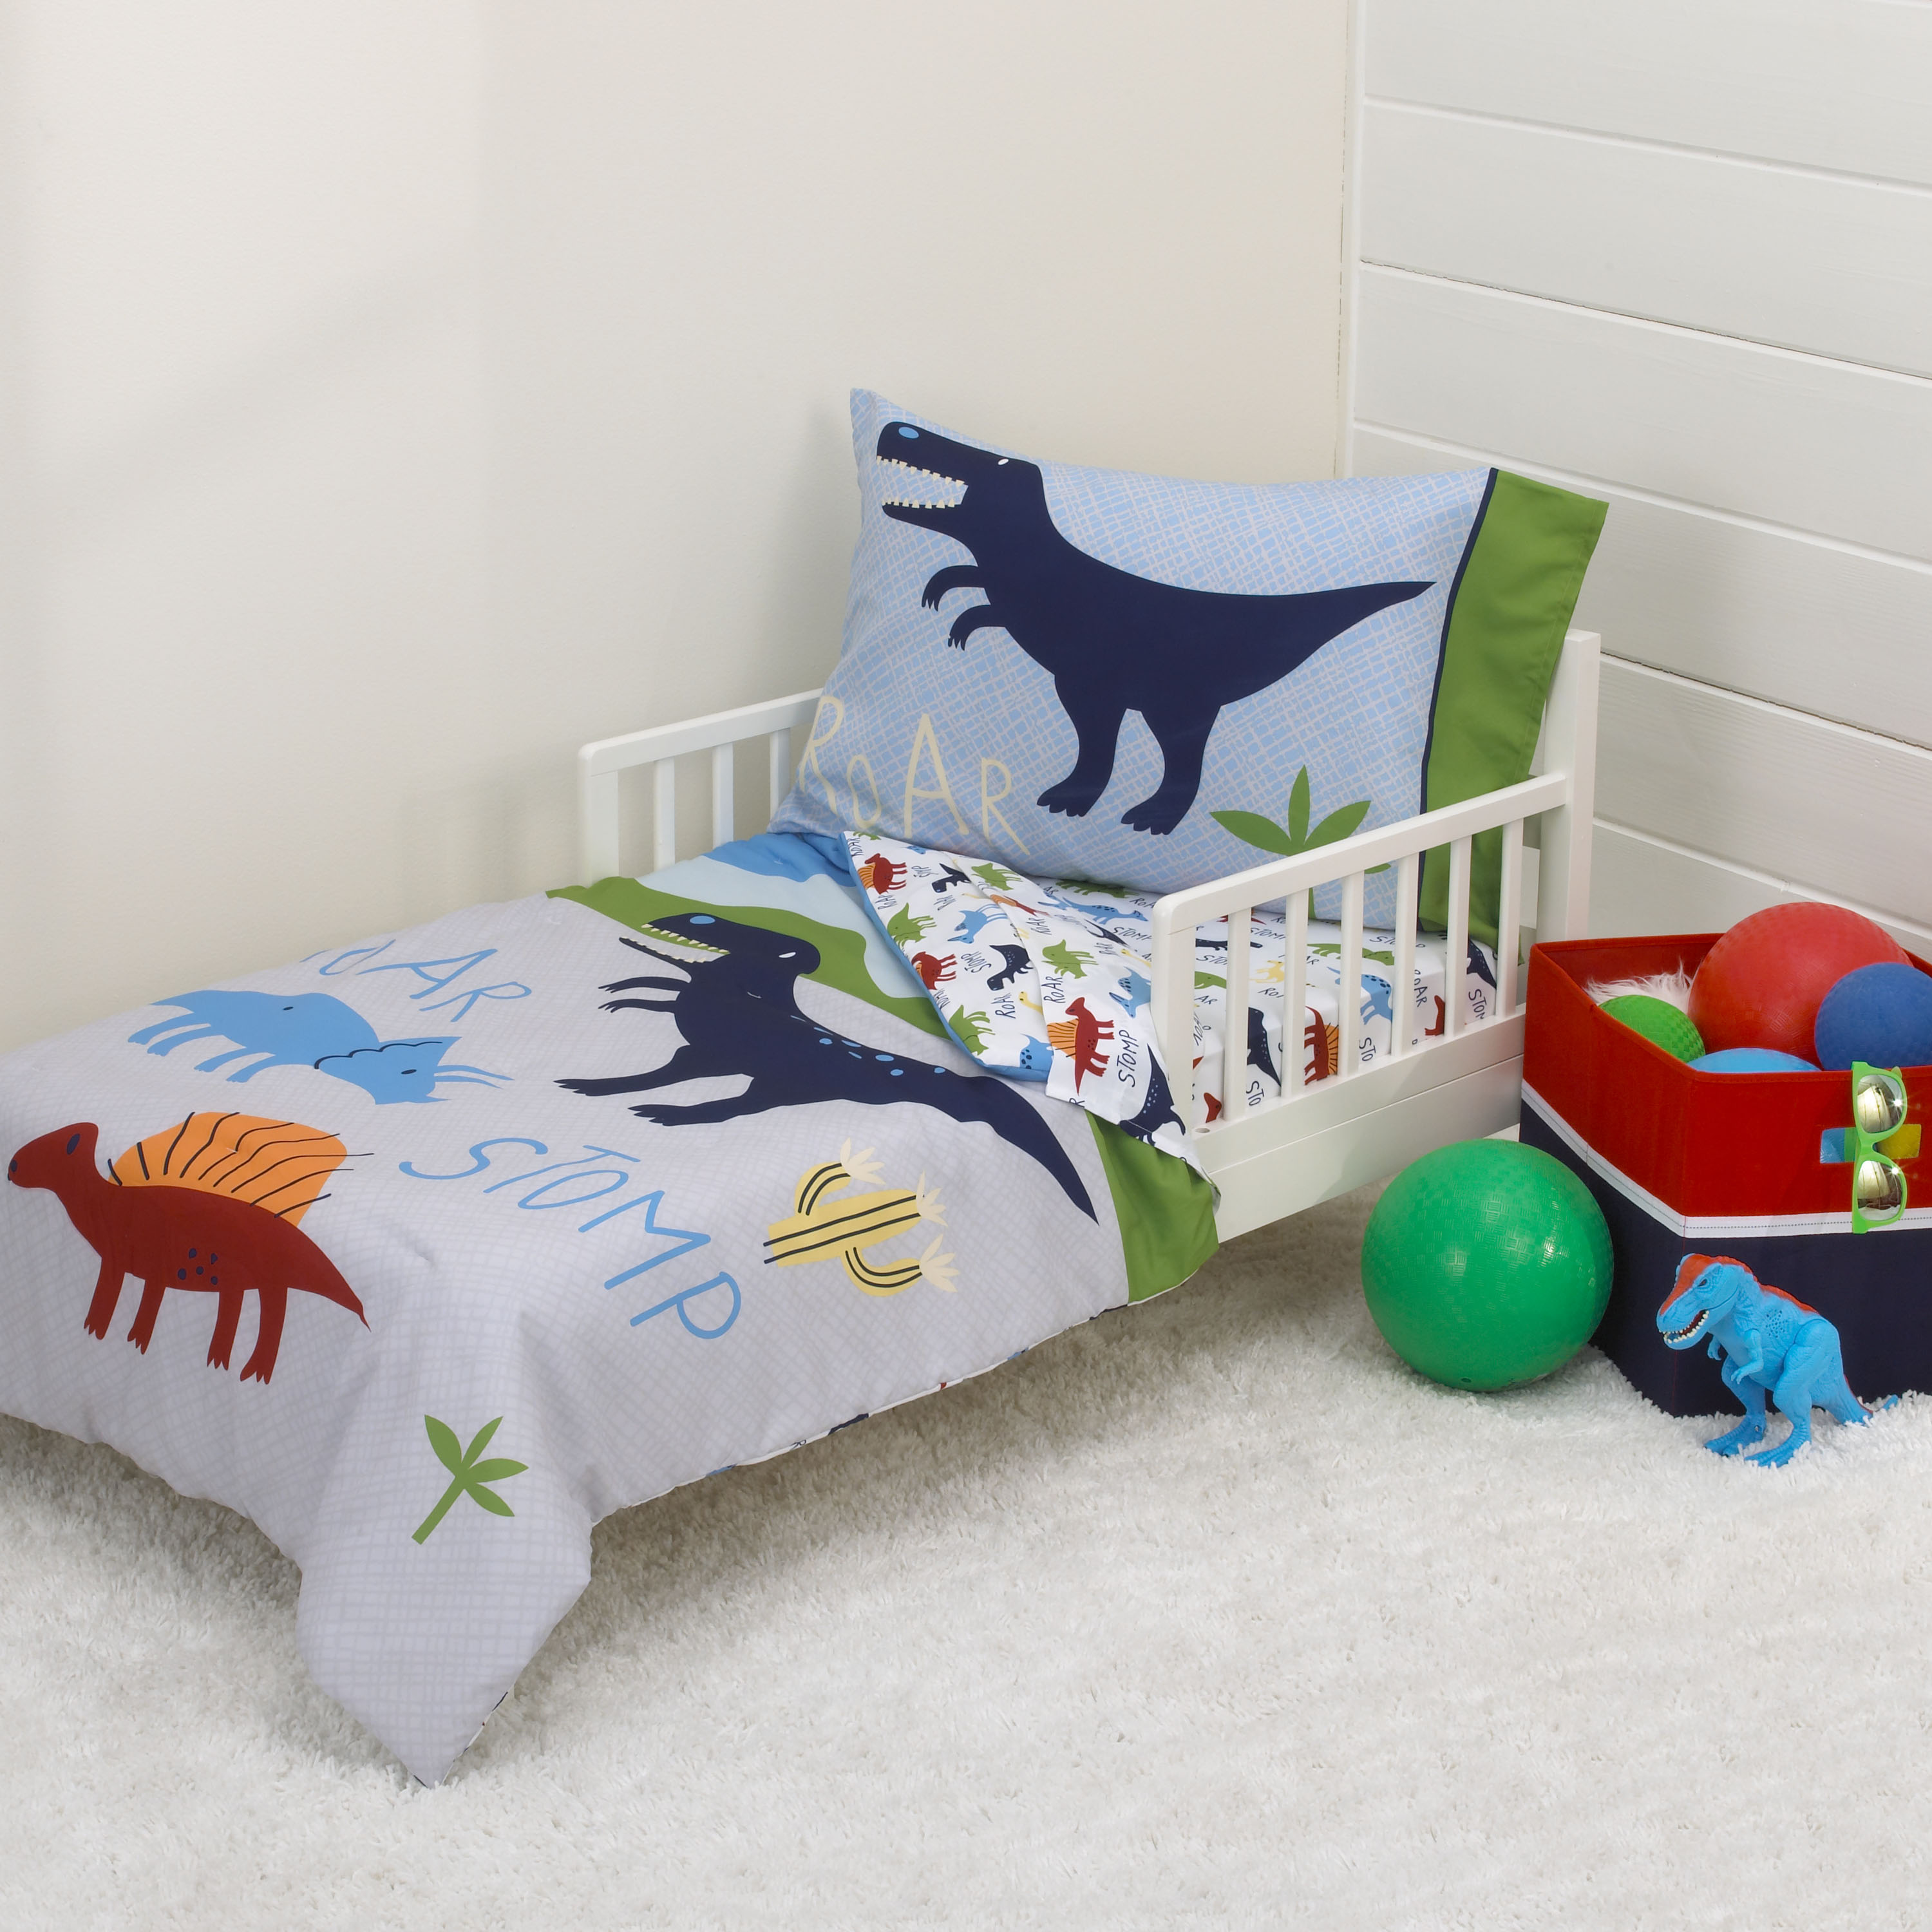 Parent's Choice Dino Boy Blue, Green, Grey 4pc Toddler Bedding Set